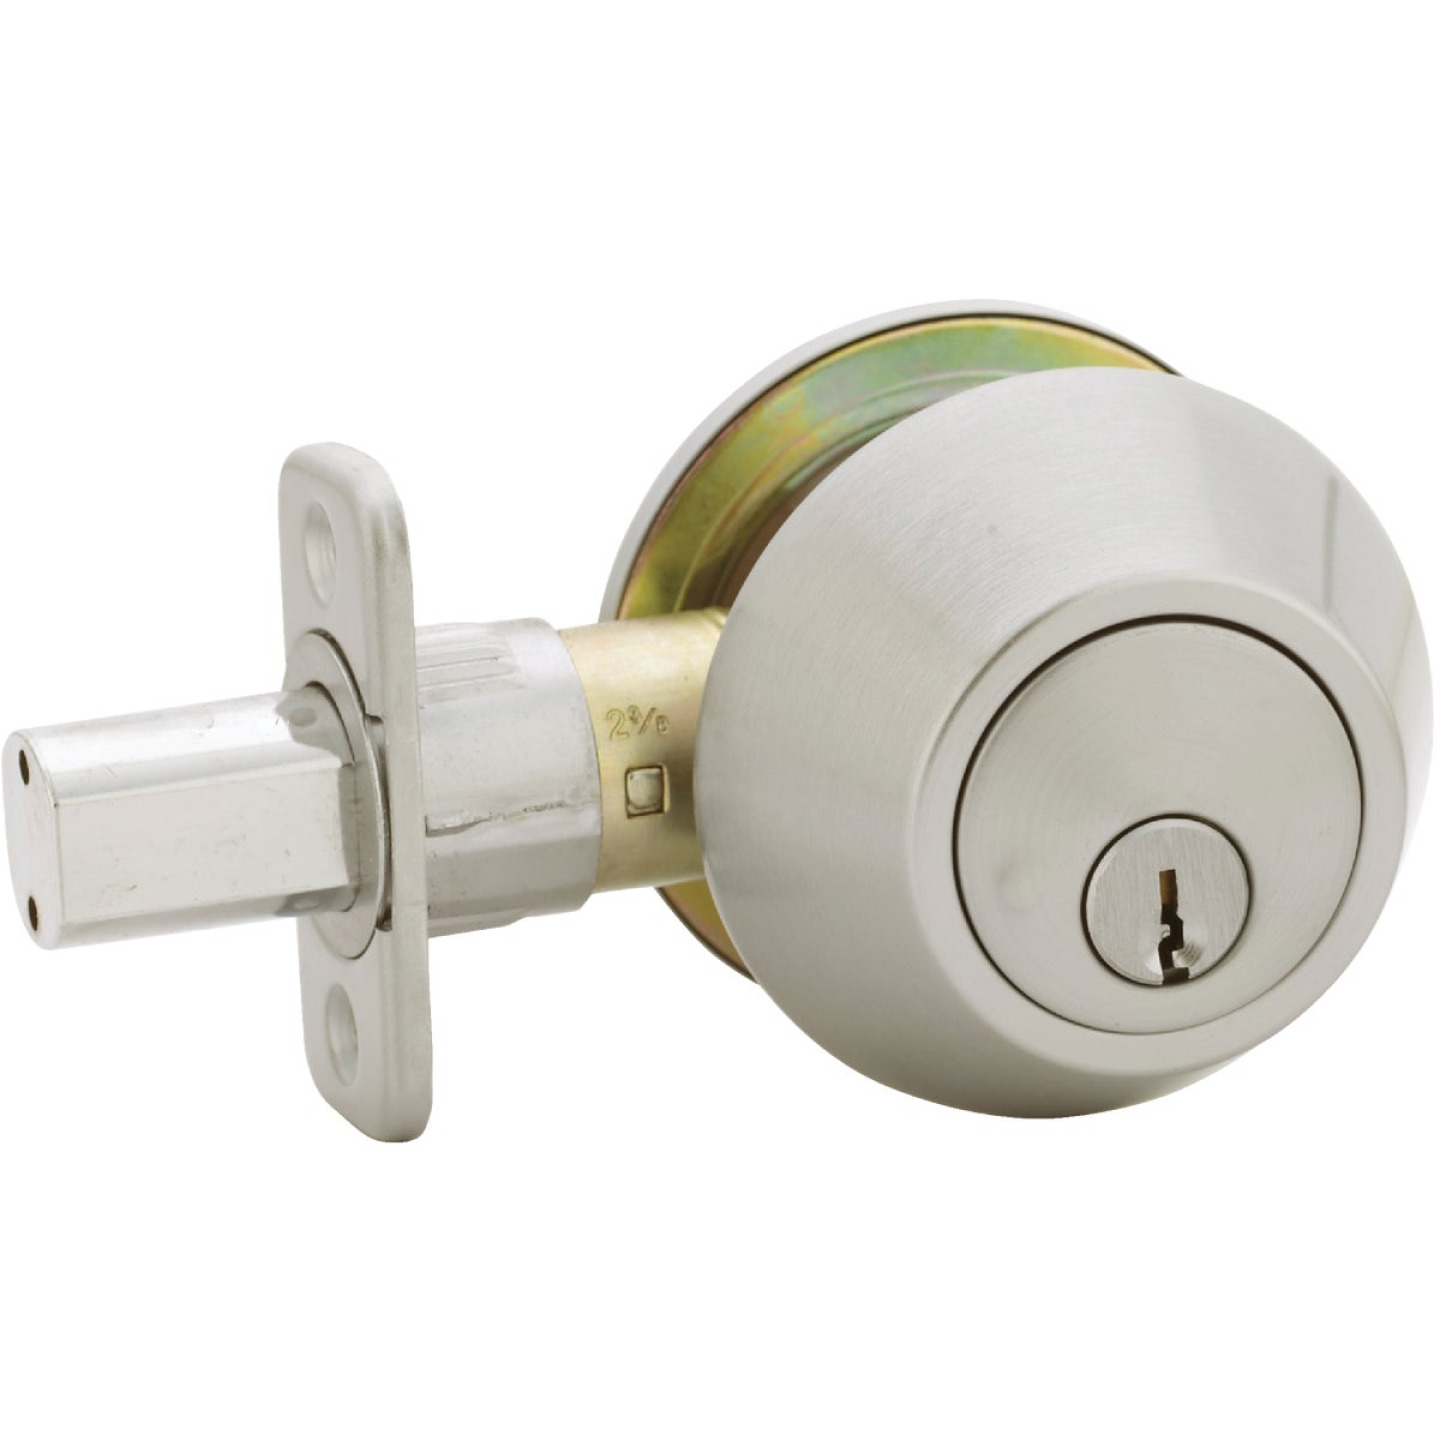 Steel Pro Satin Chrome Single Cylinder Deadbolt Image 3